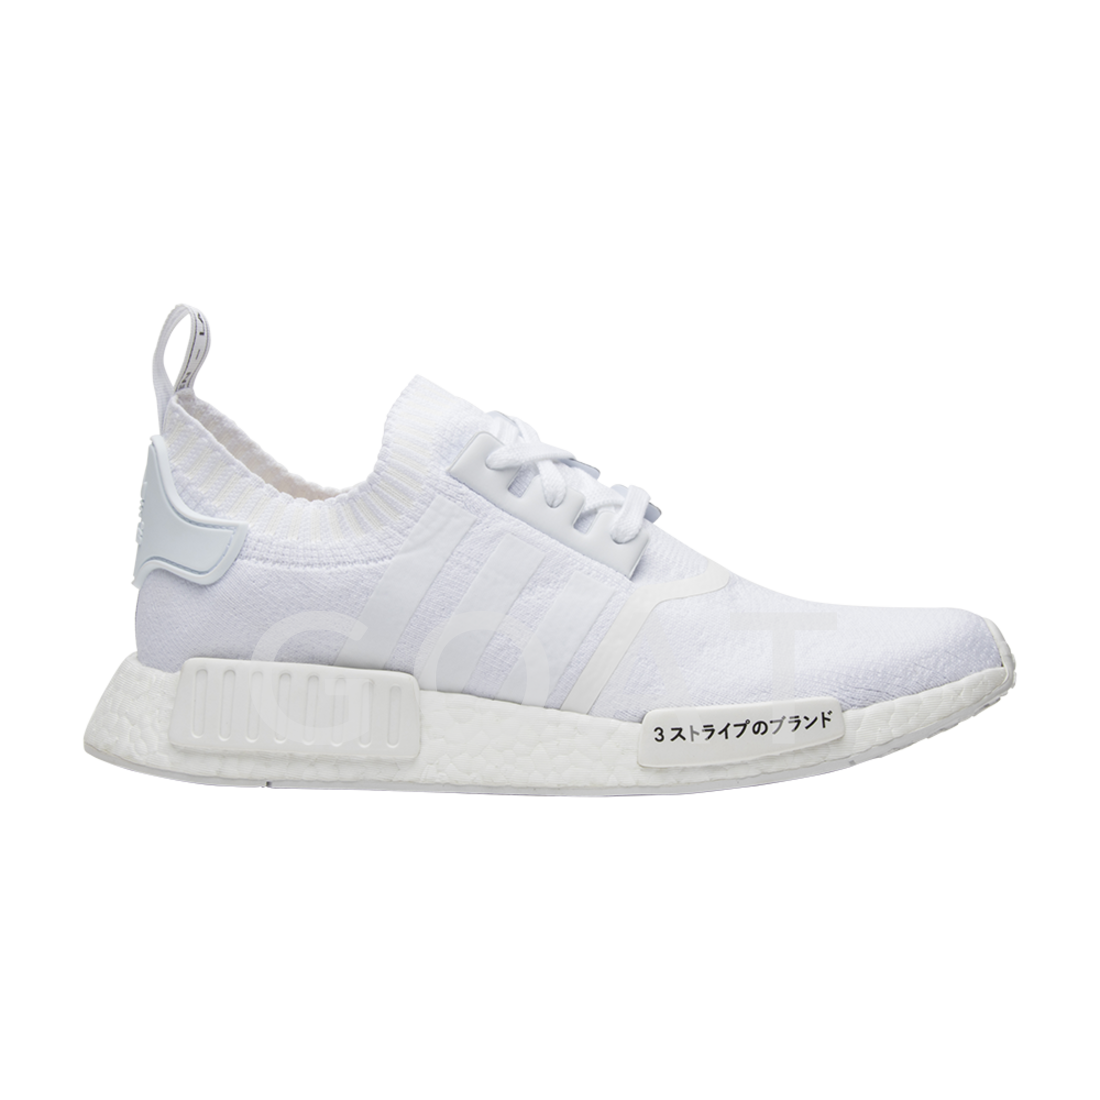 Adidas shoes nmd, Sneakers, Adidas